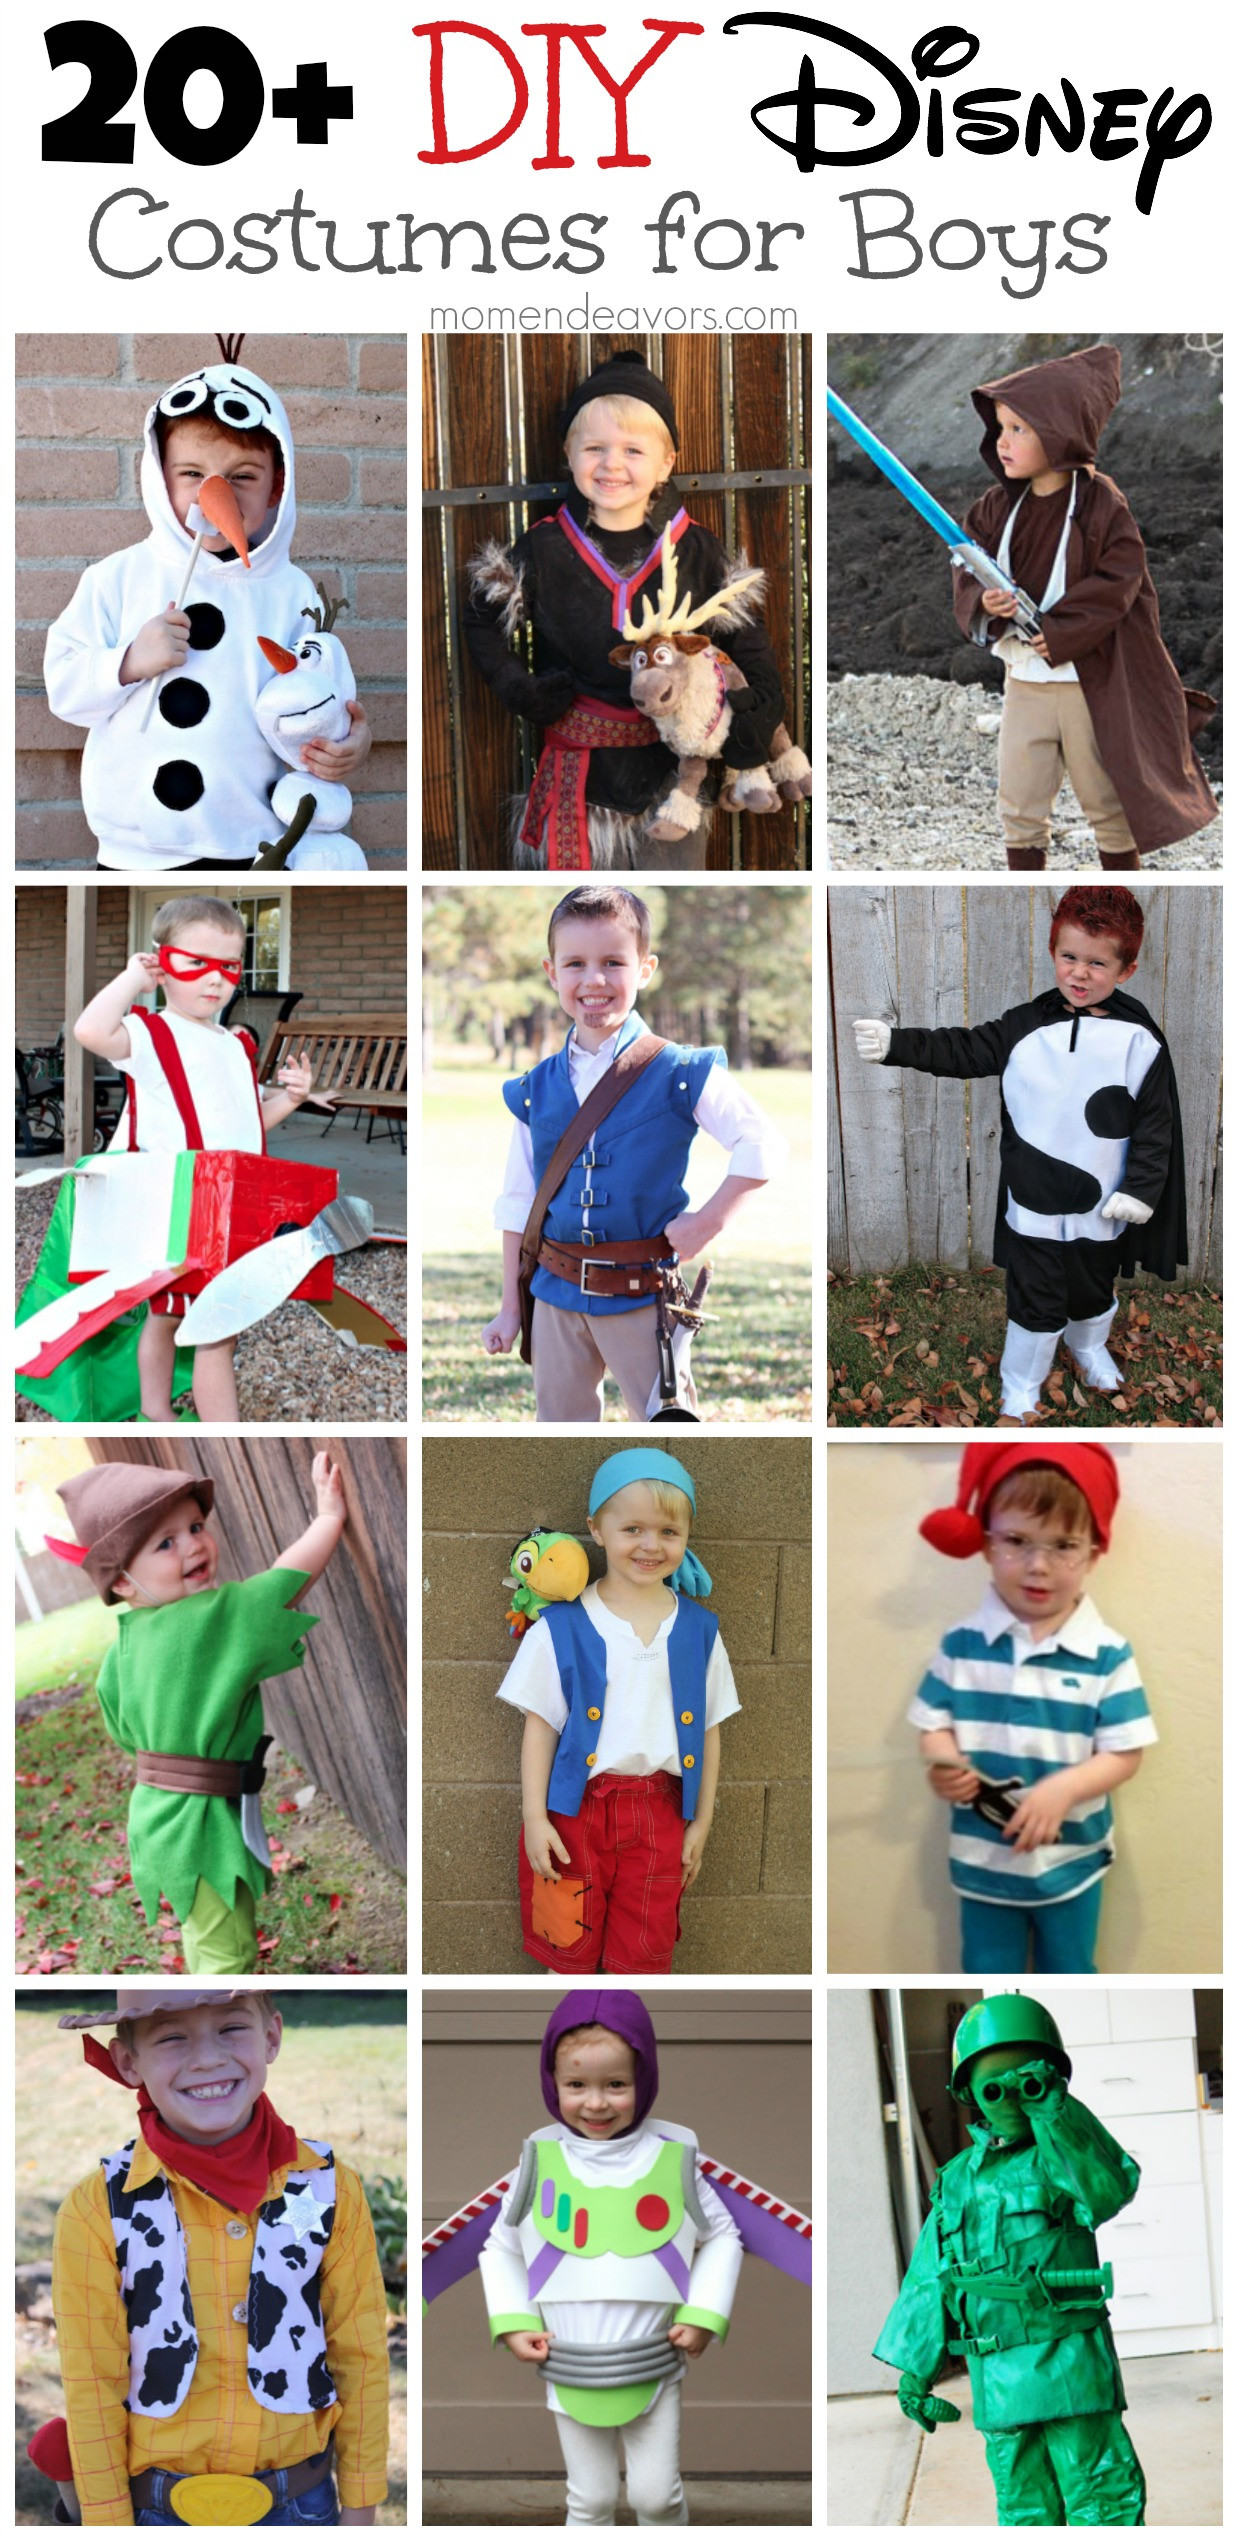 DIY Cartoon Costumes  DIY Disney Costumes for Boys